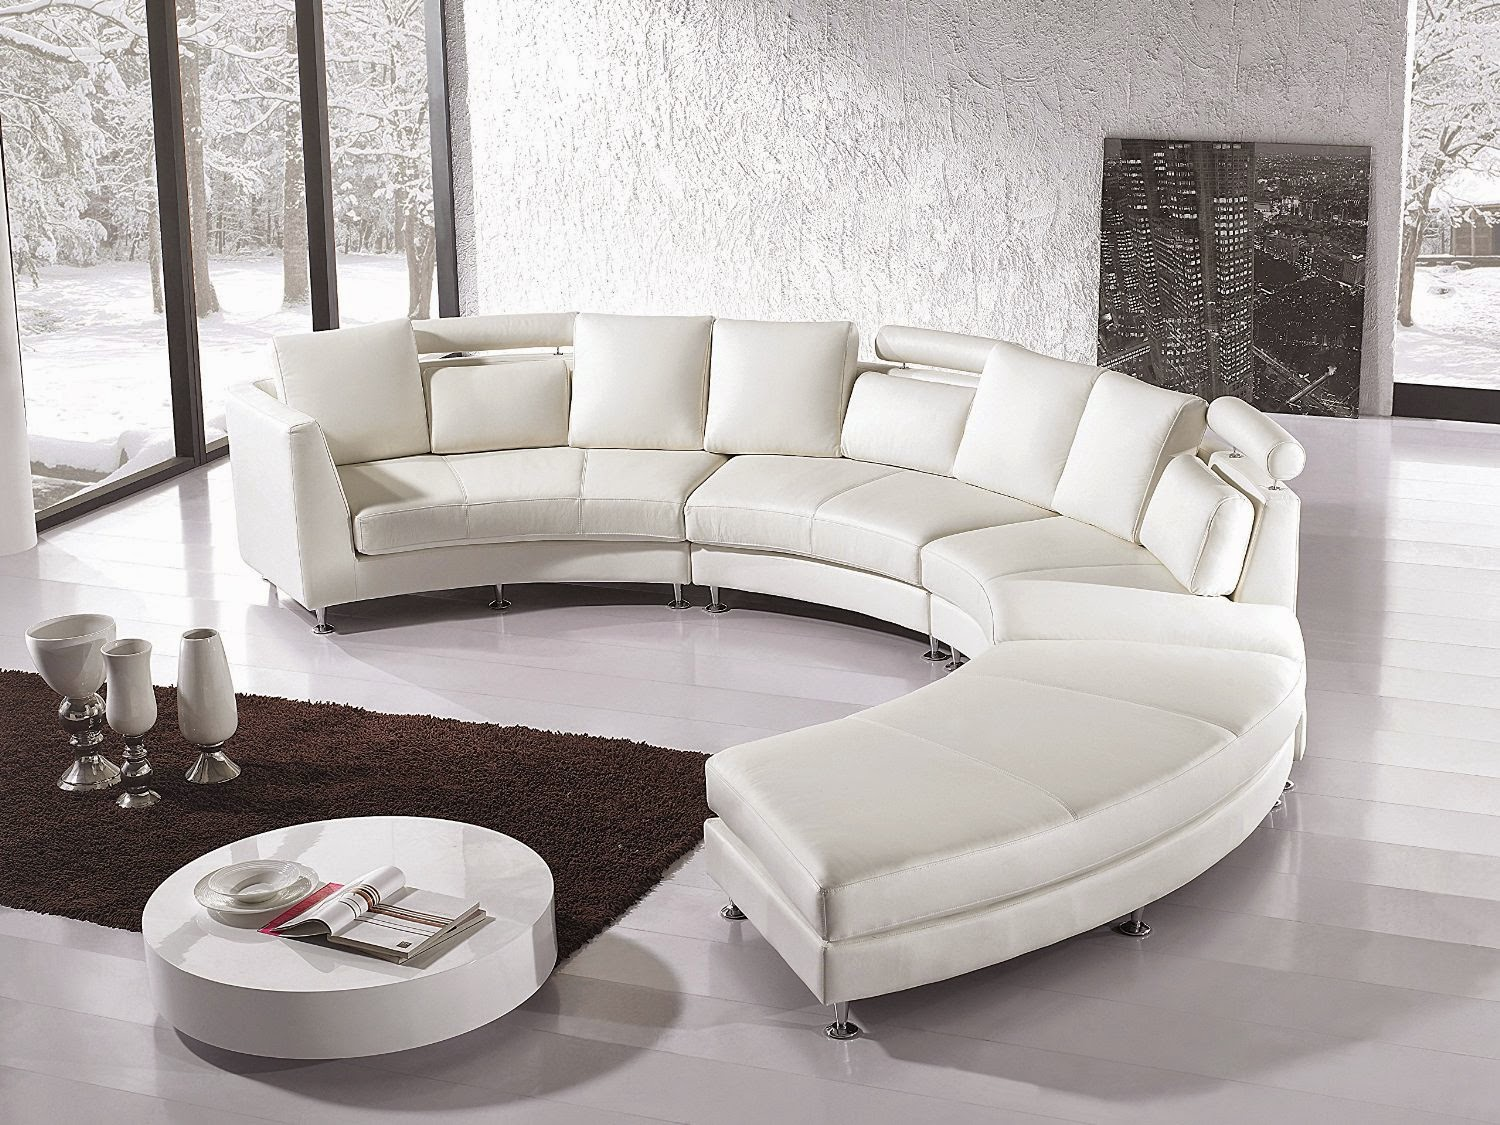 small round sofa set design your own curved sofas and loveseats reviews leather